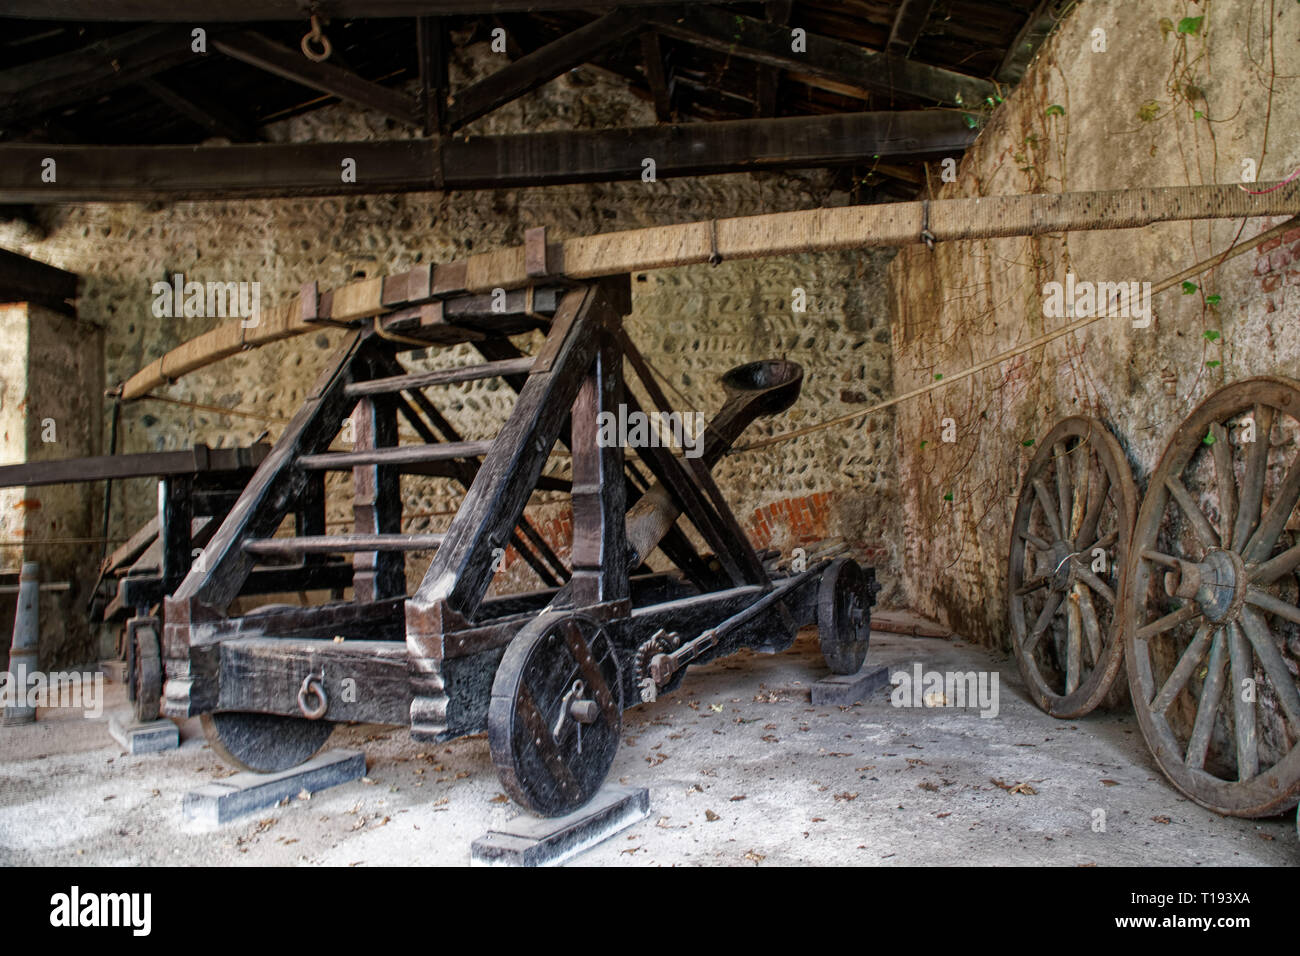 Medieval siege weapons, catapult with bow engine - Stock Image